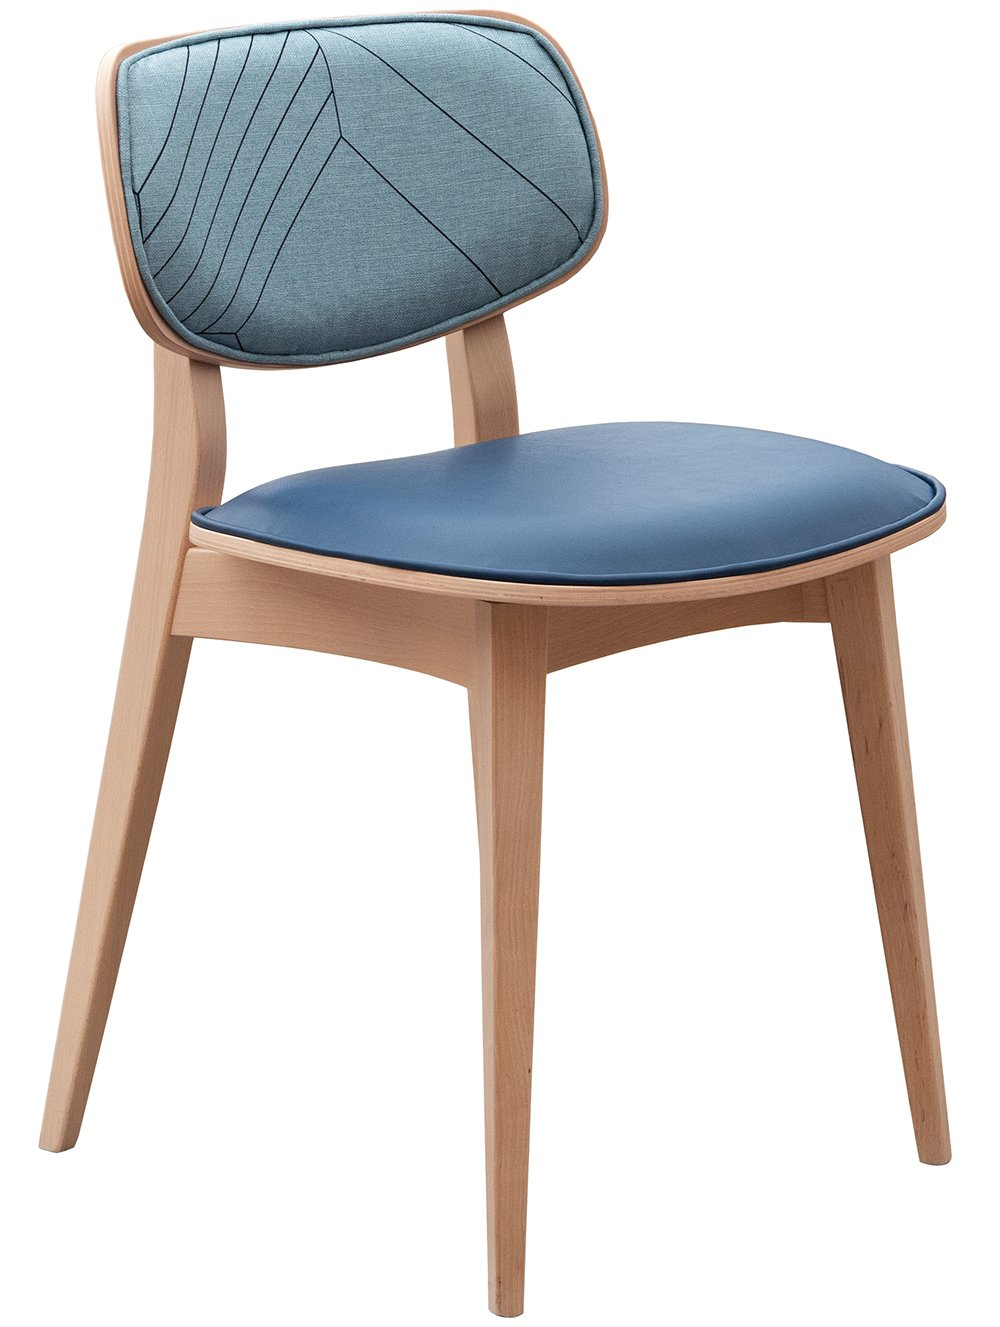 Violet side chair